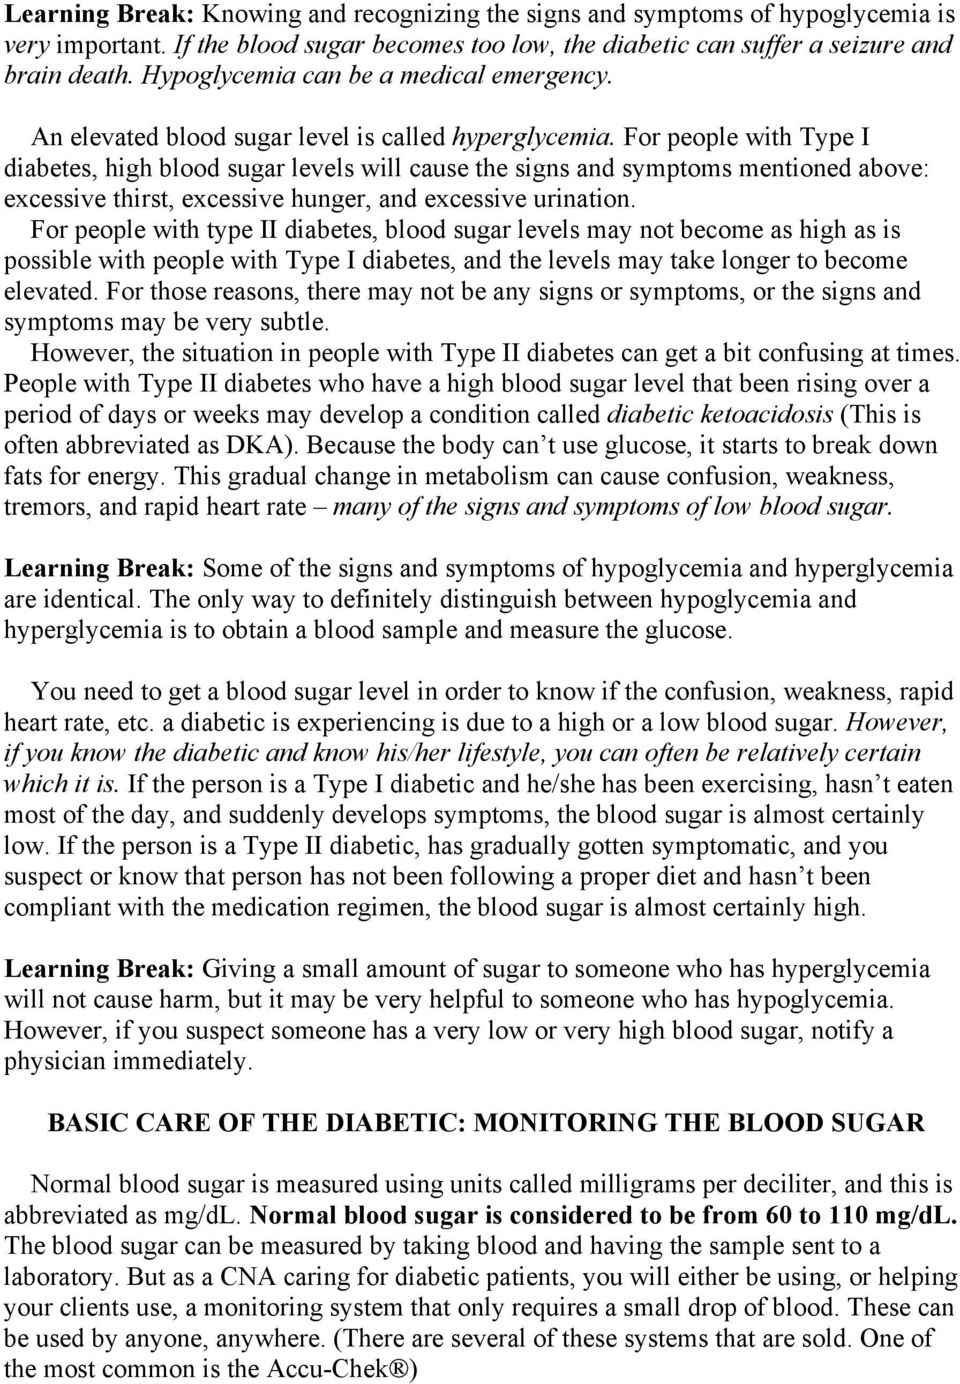 HOW TO CARE FOR A PATIENT WITH DIABETES - PDF